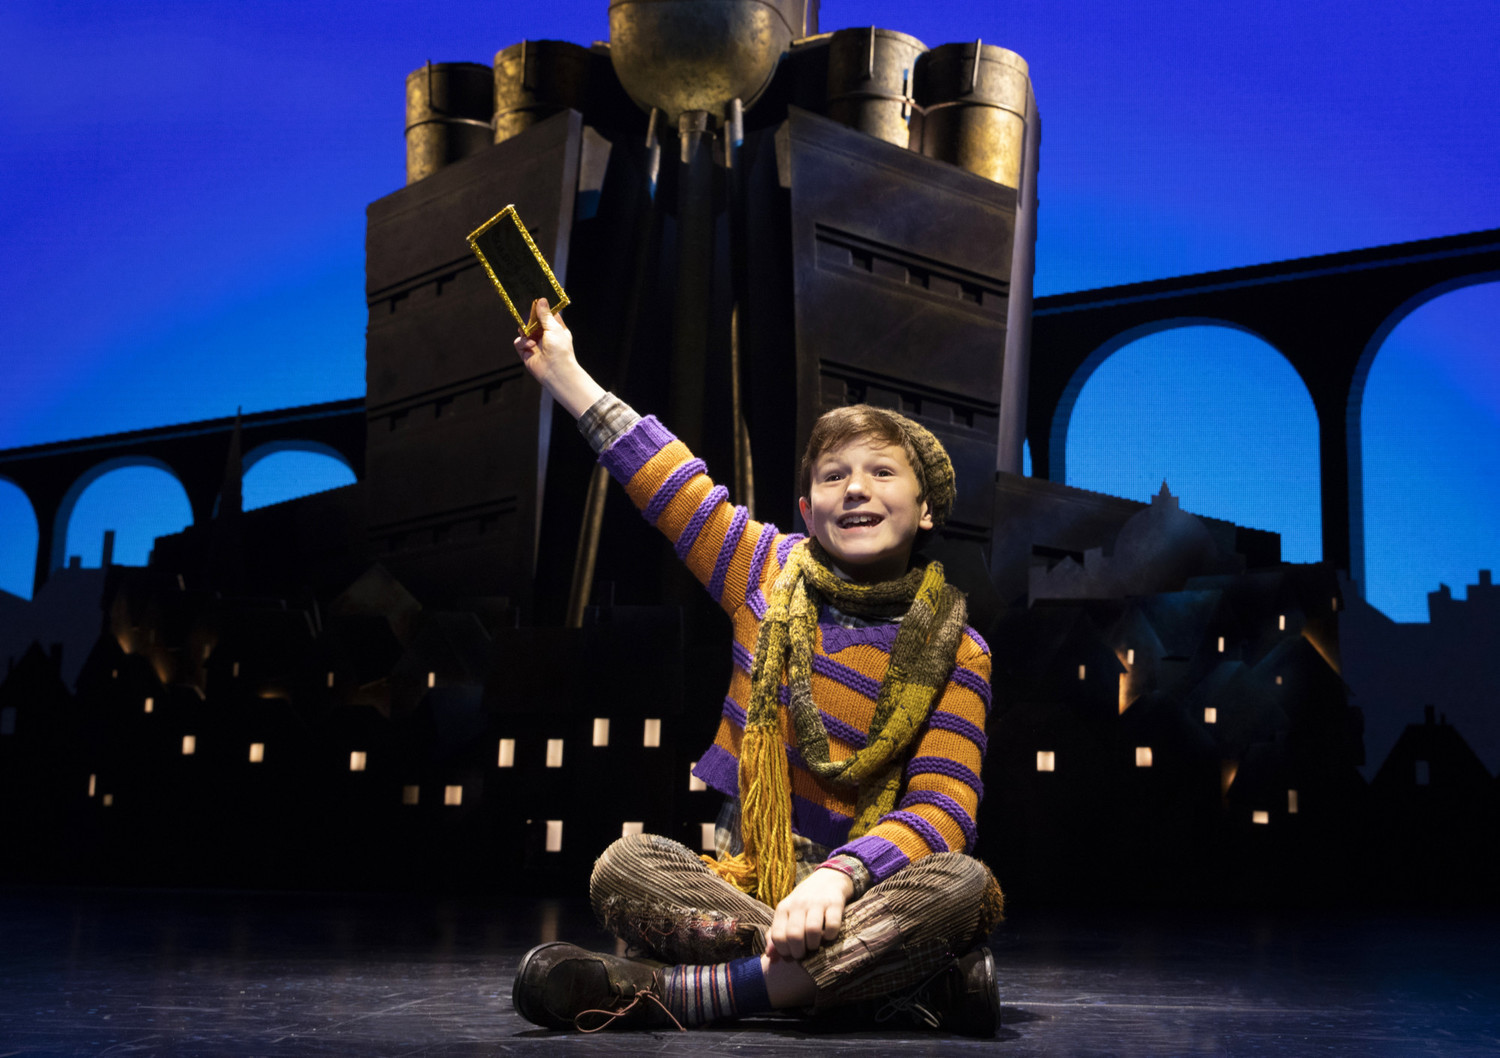 BWW Review: Oozy, Saccharine Sweet National Tour of CHARLIE AND THE CHOCOLATE FACTORY Just Might Be One Concoction Worth Trying